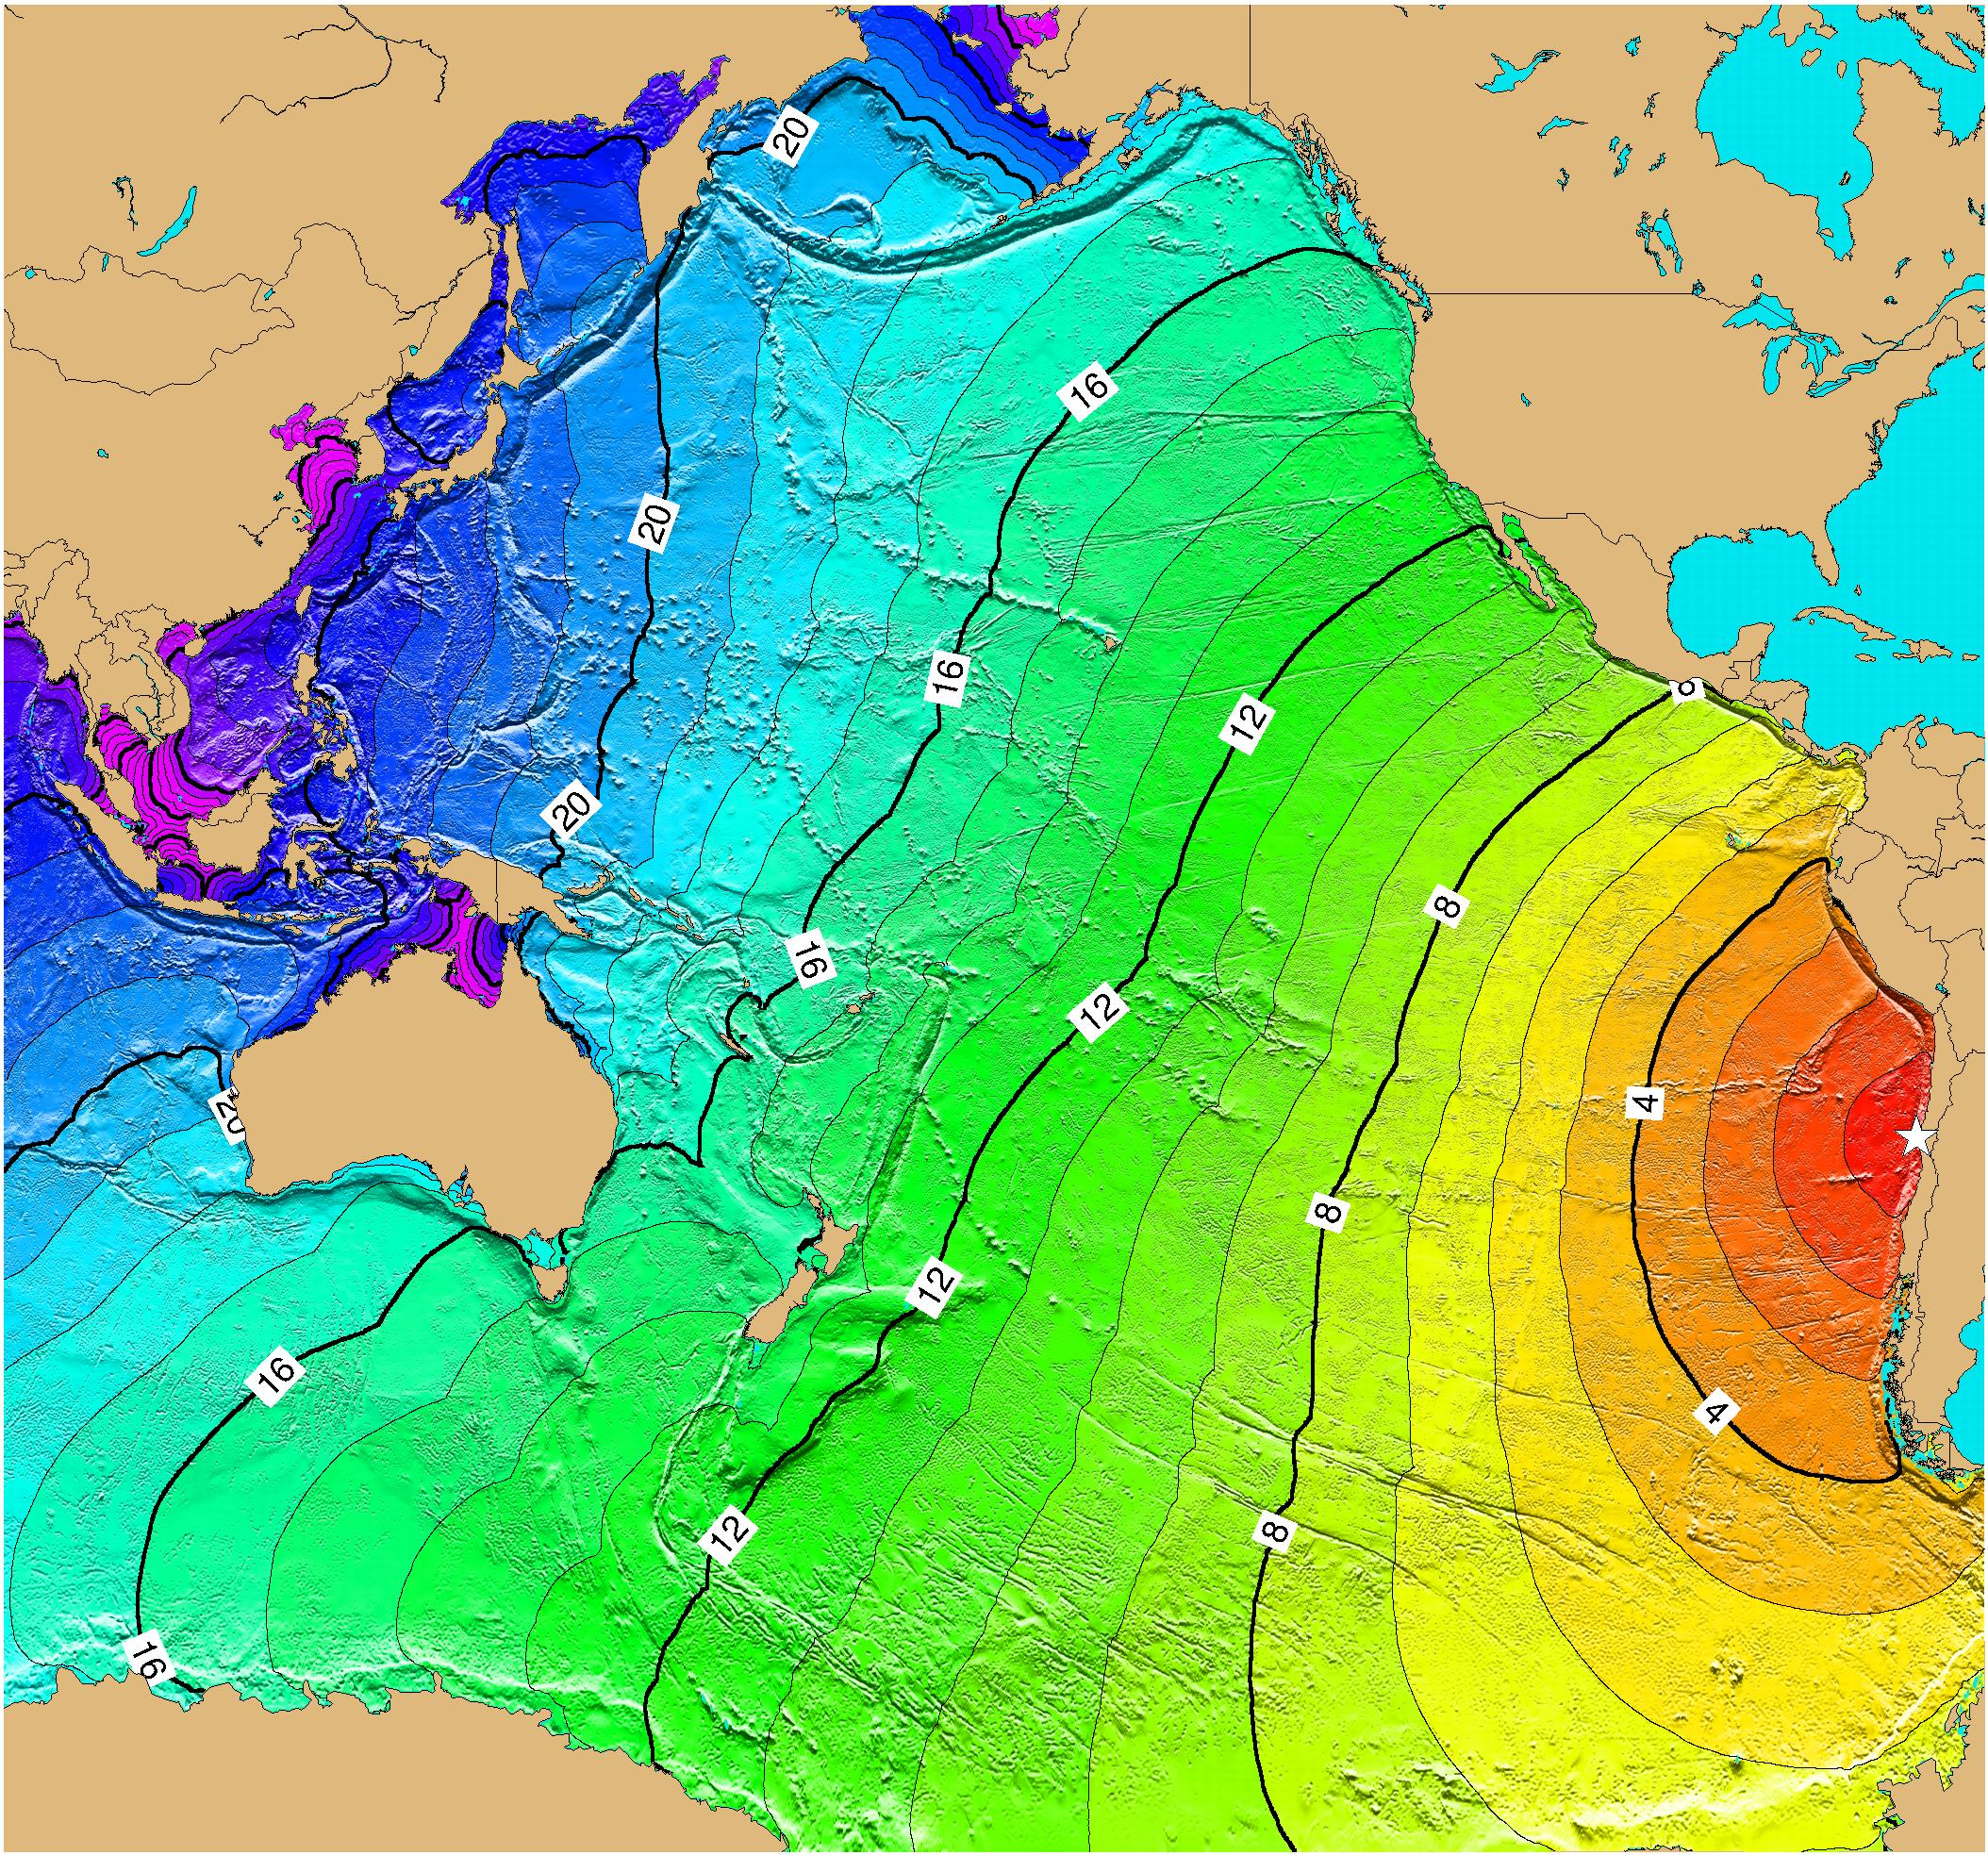 Tsunami Time Travel to Chile Map See map details From ngdc.noaa.gov